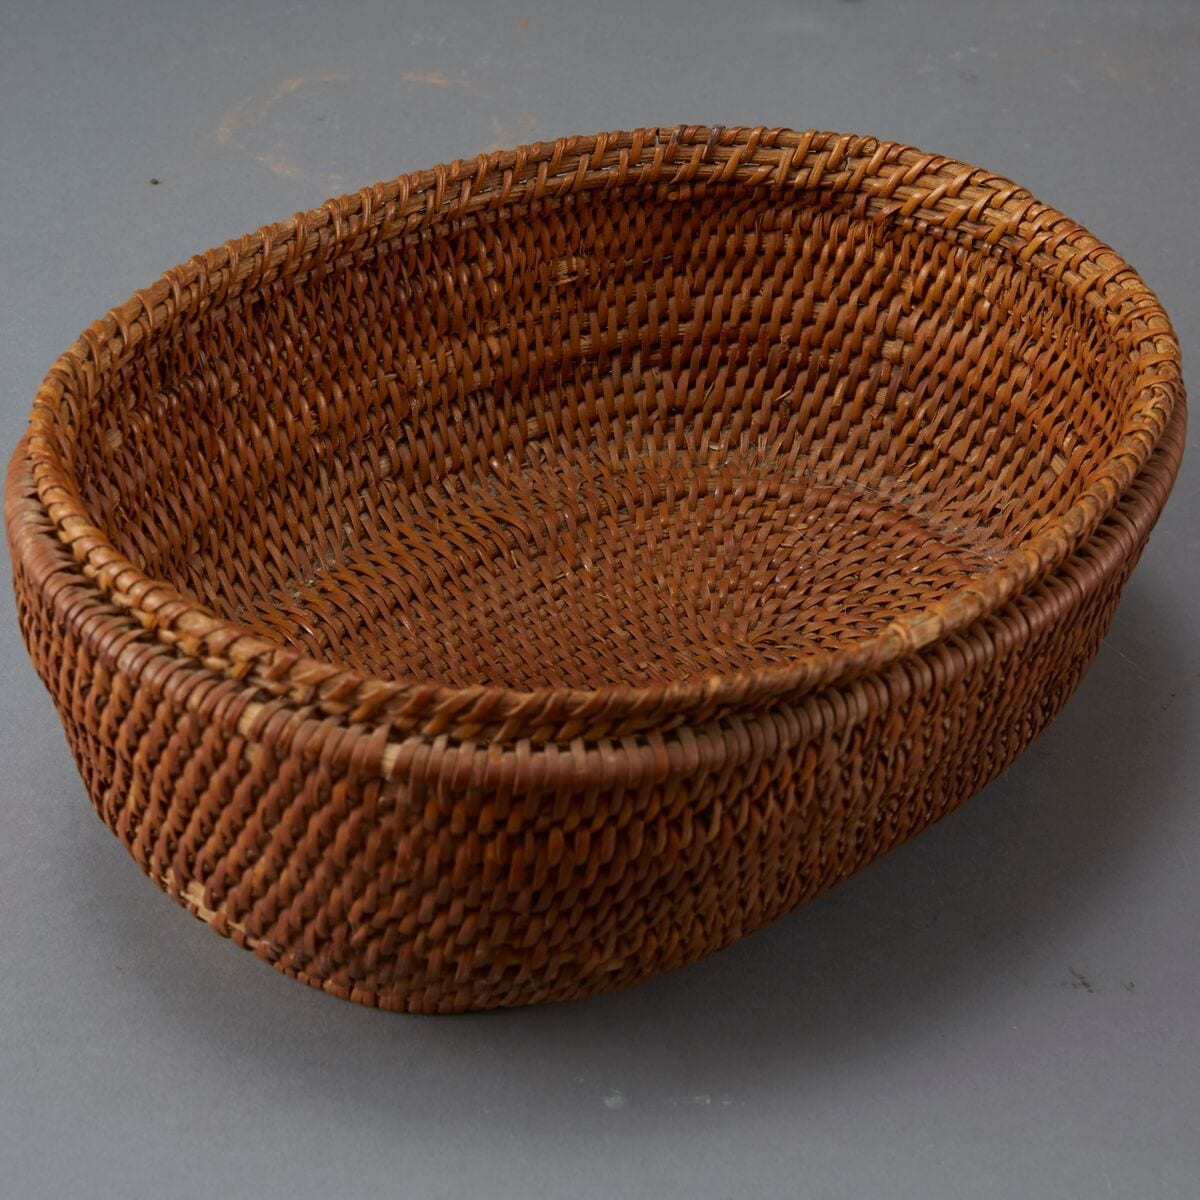 Lot 070: Group of 14 Native American Baskets